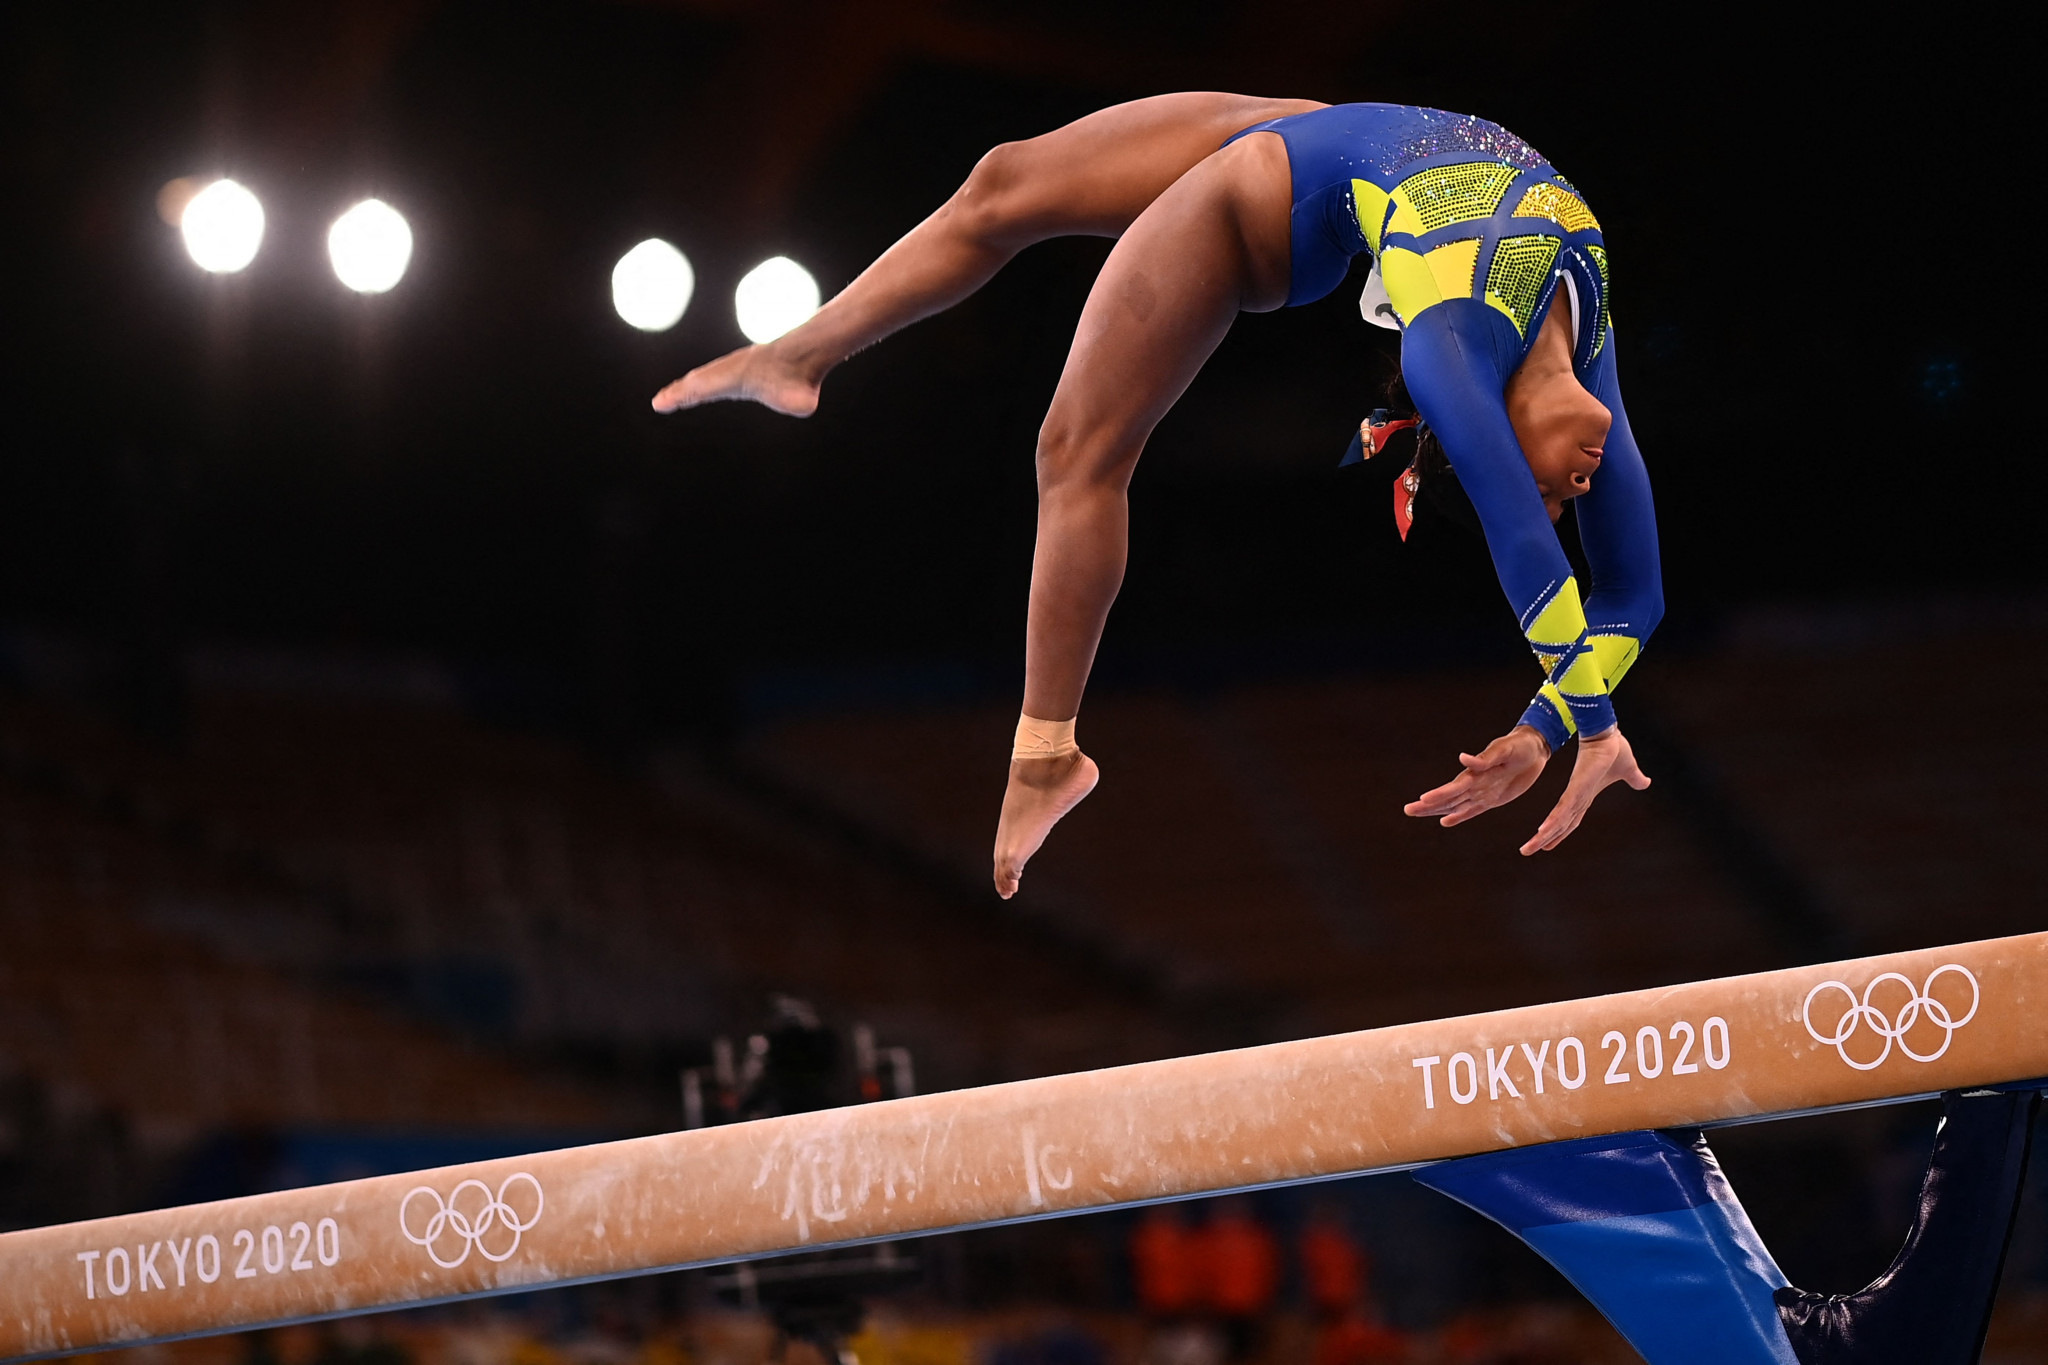 Rebeca Andrade is the first woman representing Brazil to claim an Olympic medal in artistic gymnastics, finishing 0.135 points behind Lee in second place ©Getty Images